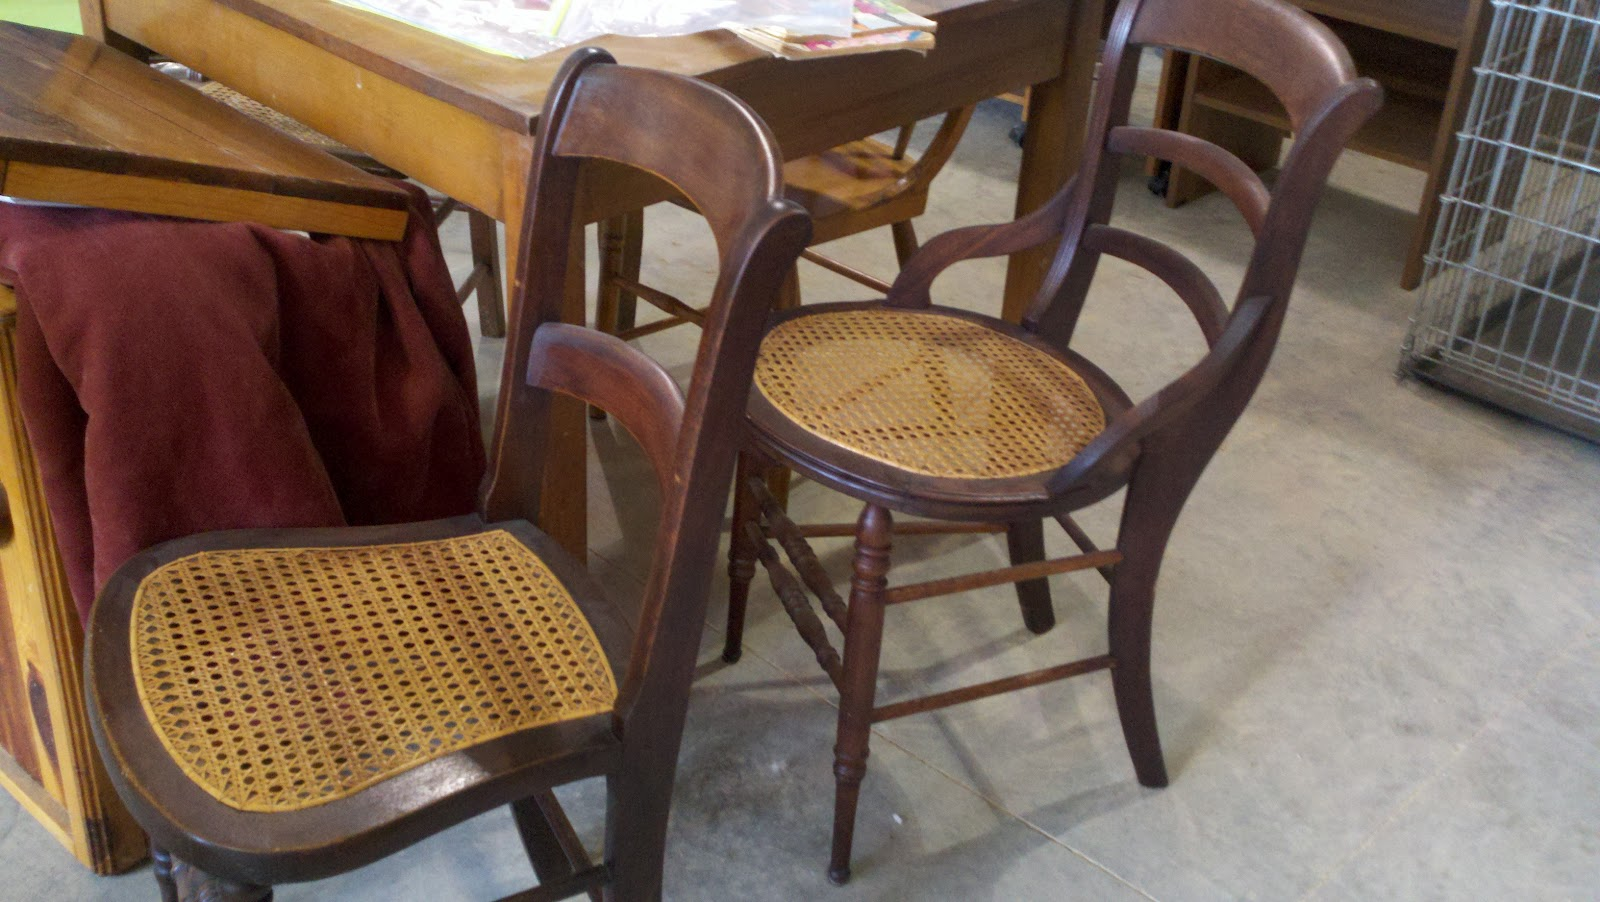 Antique Wooden Chairs With Cane Seats